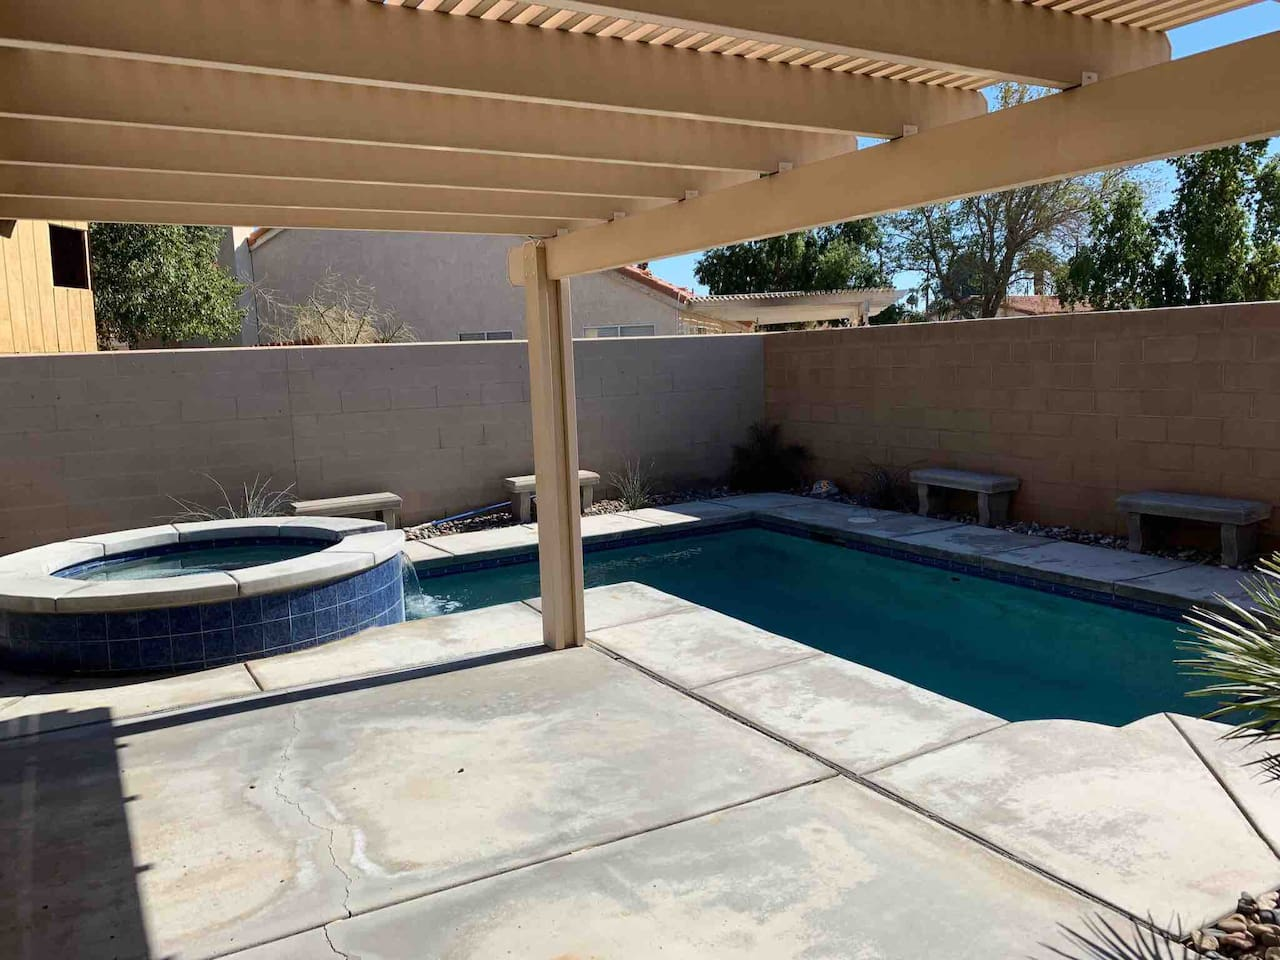 Coachella Fest home 1.5 miles with beautiful pool